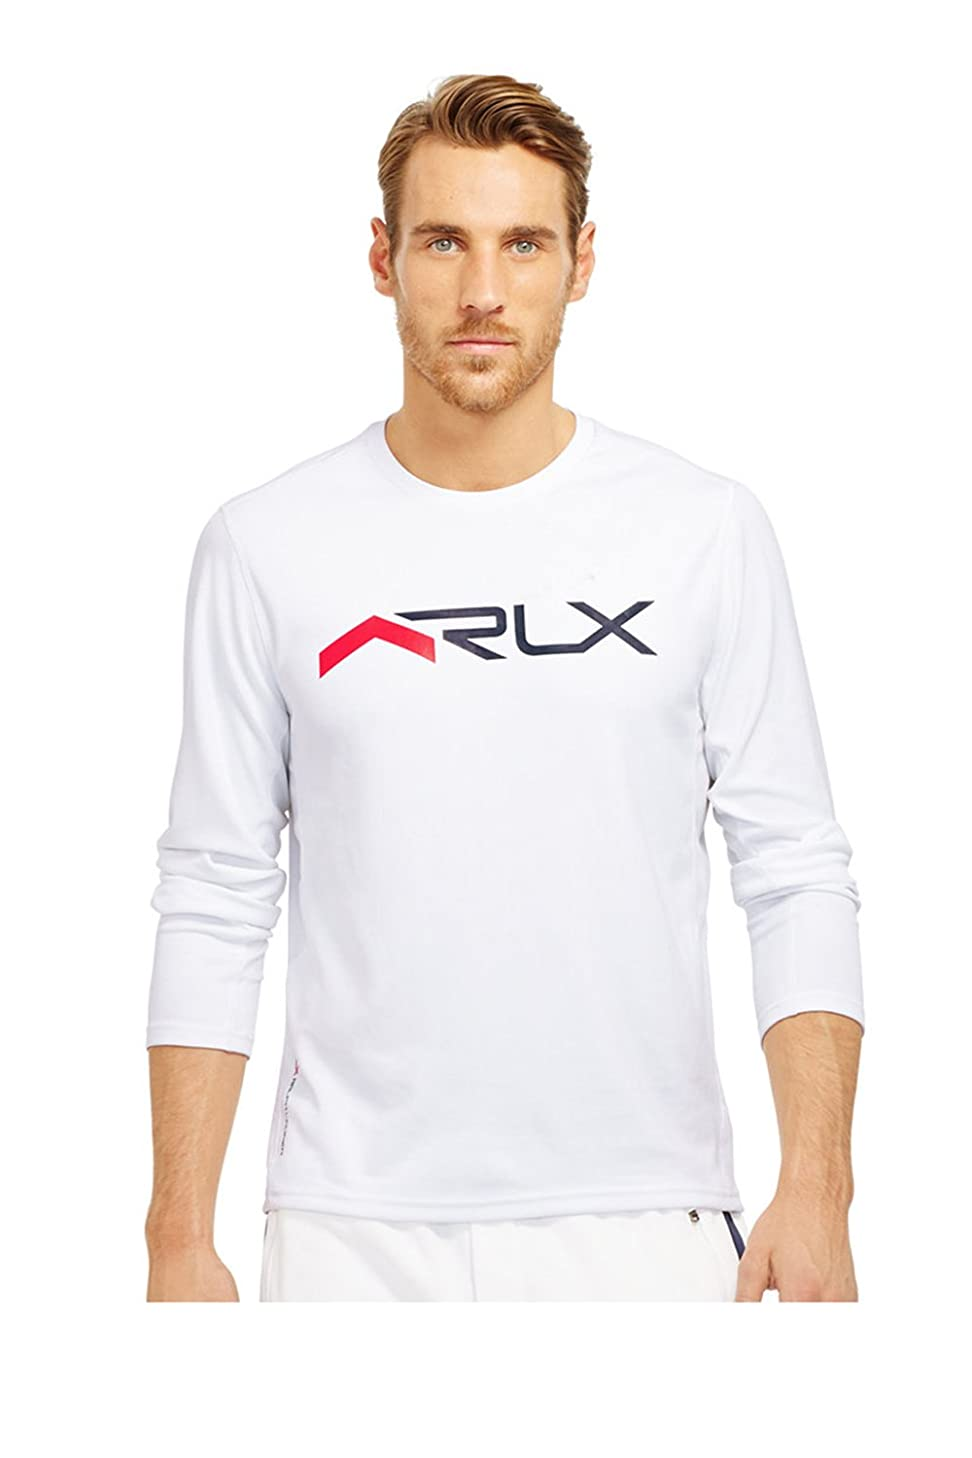 POLO Sport RLX Graphic T-Shirt (Medium)